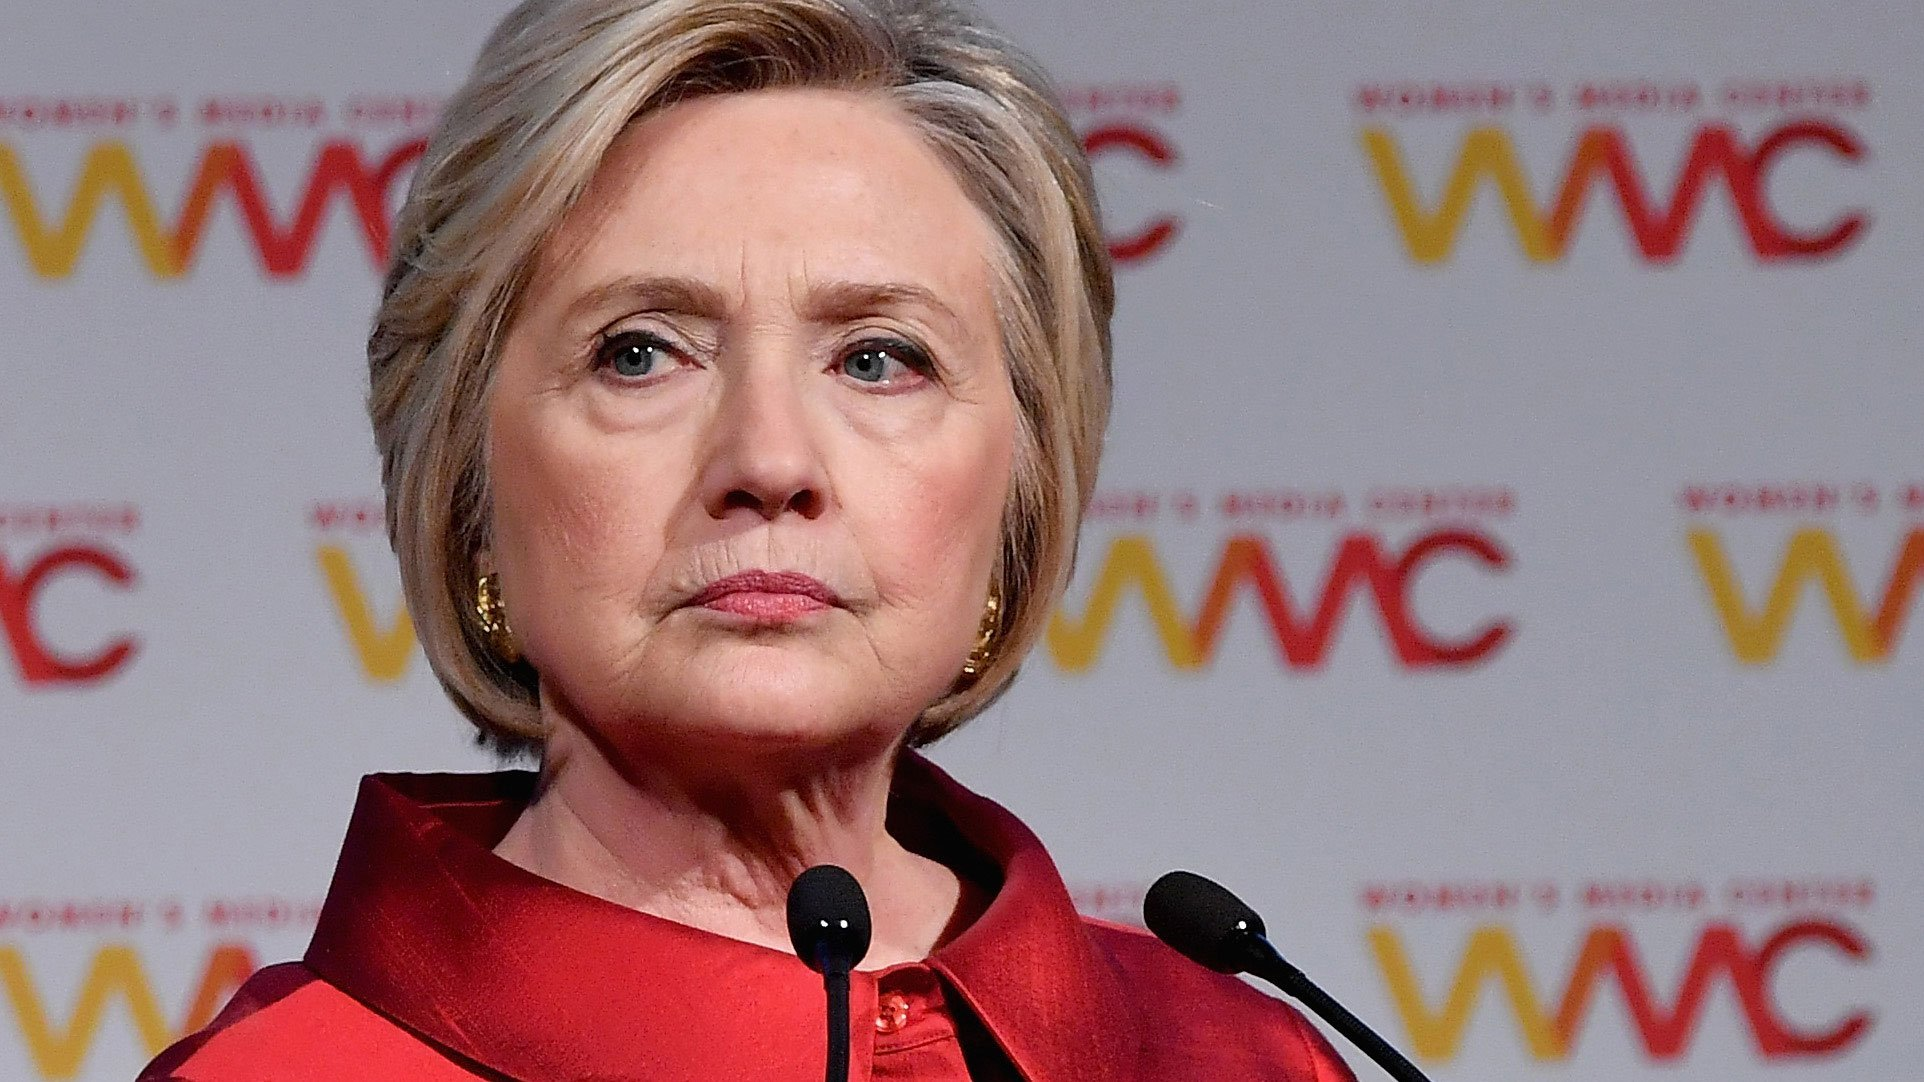 Hillary Clinton issues dire warnings about election integrity to Democratic 2020 hopefuls